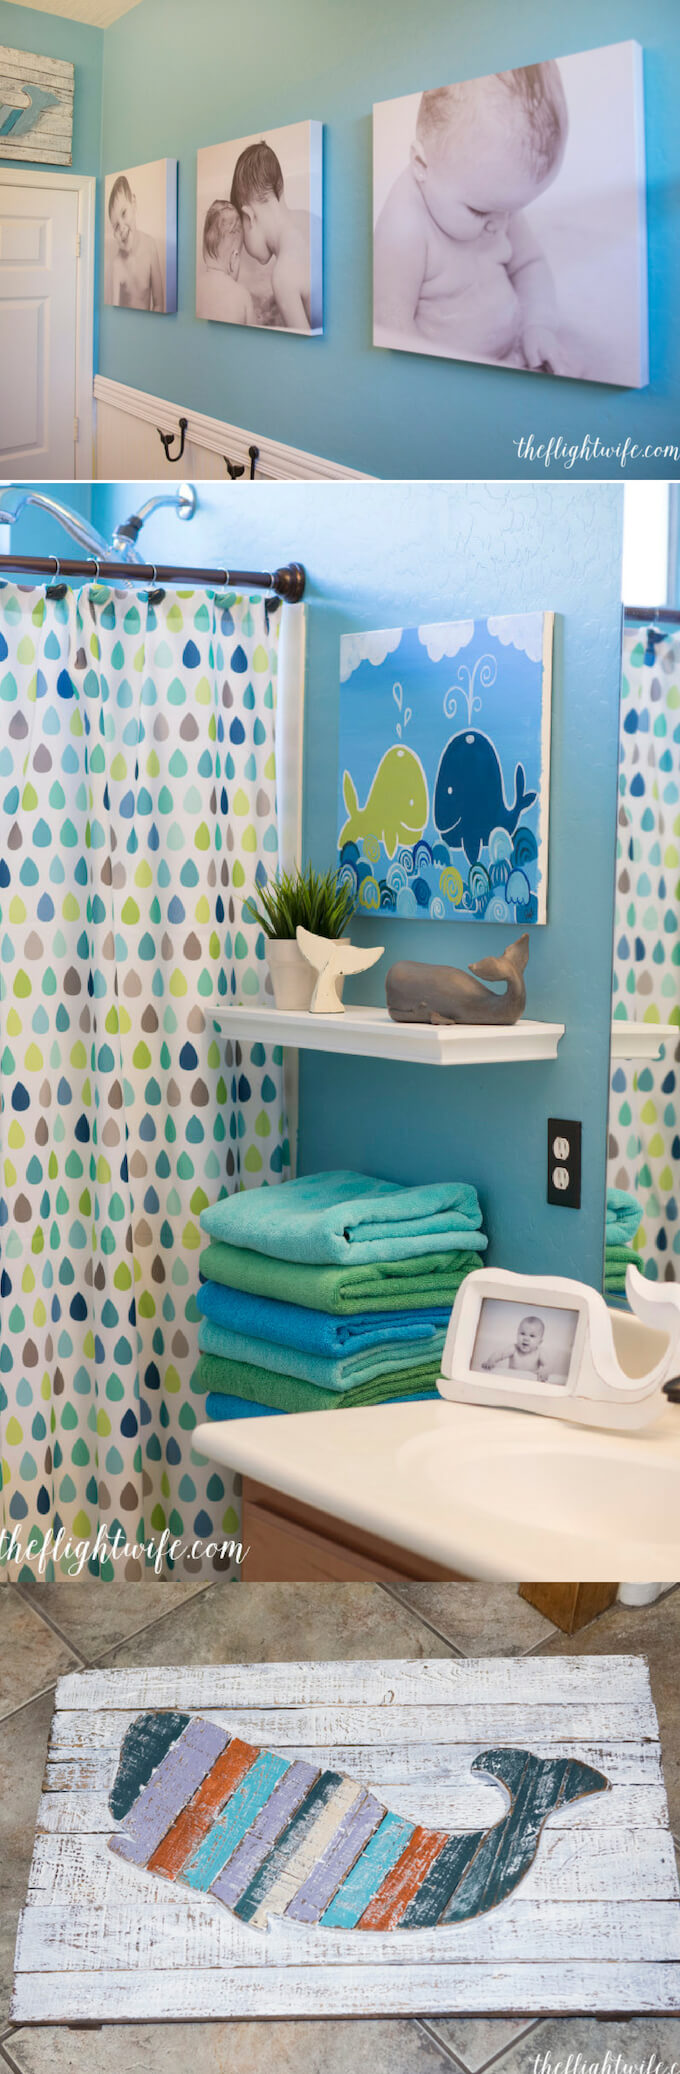 Kids Bathroom Makeover – Fun And Friendly Whales | Kids Bathroom Décor Tips: Decorating Ideas for a Child's Bathroom